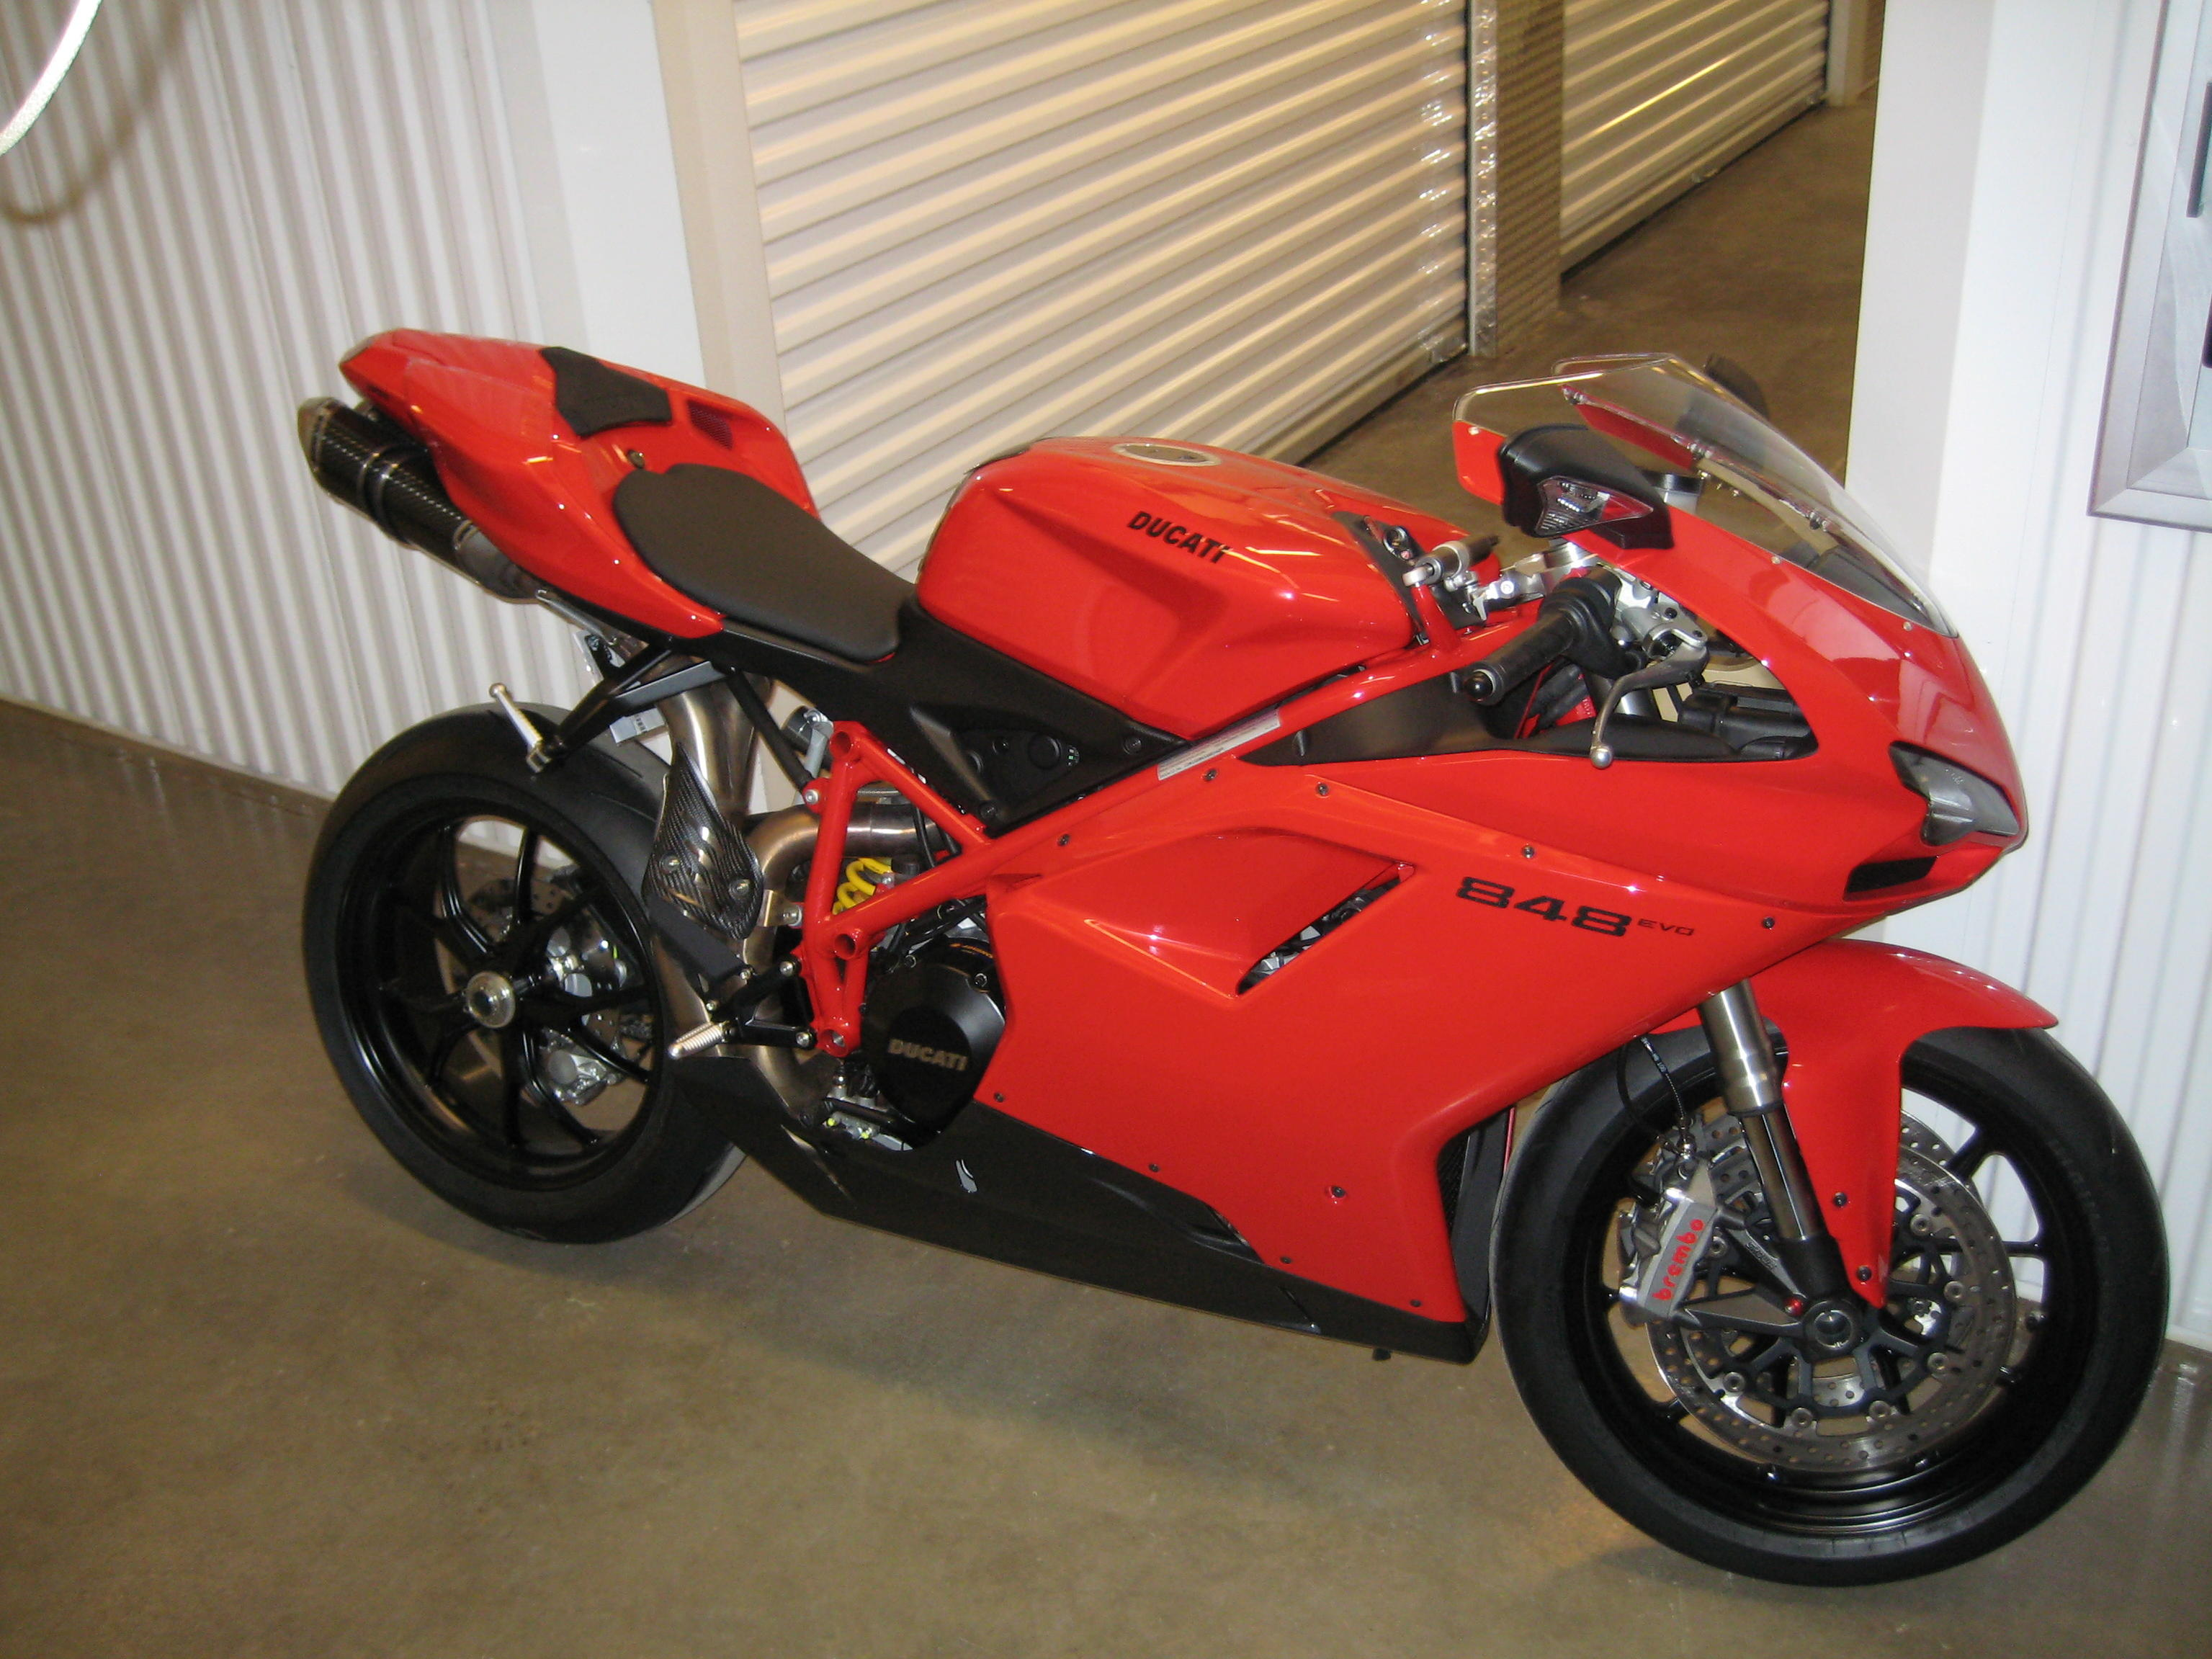 For Sale: 2011 Ducati 848 Evo with Full Termignoni (70miles on bike